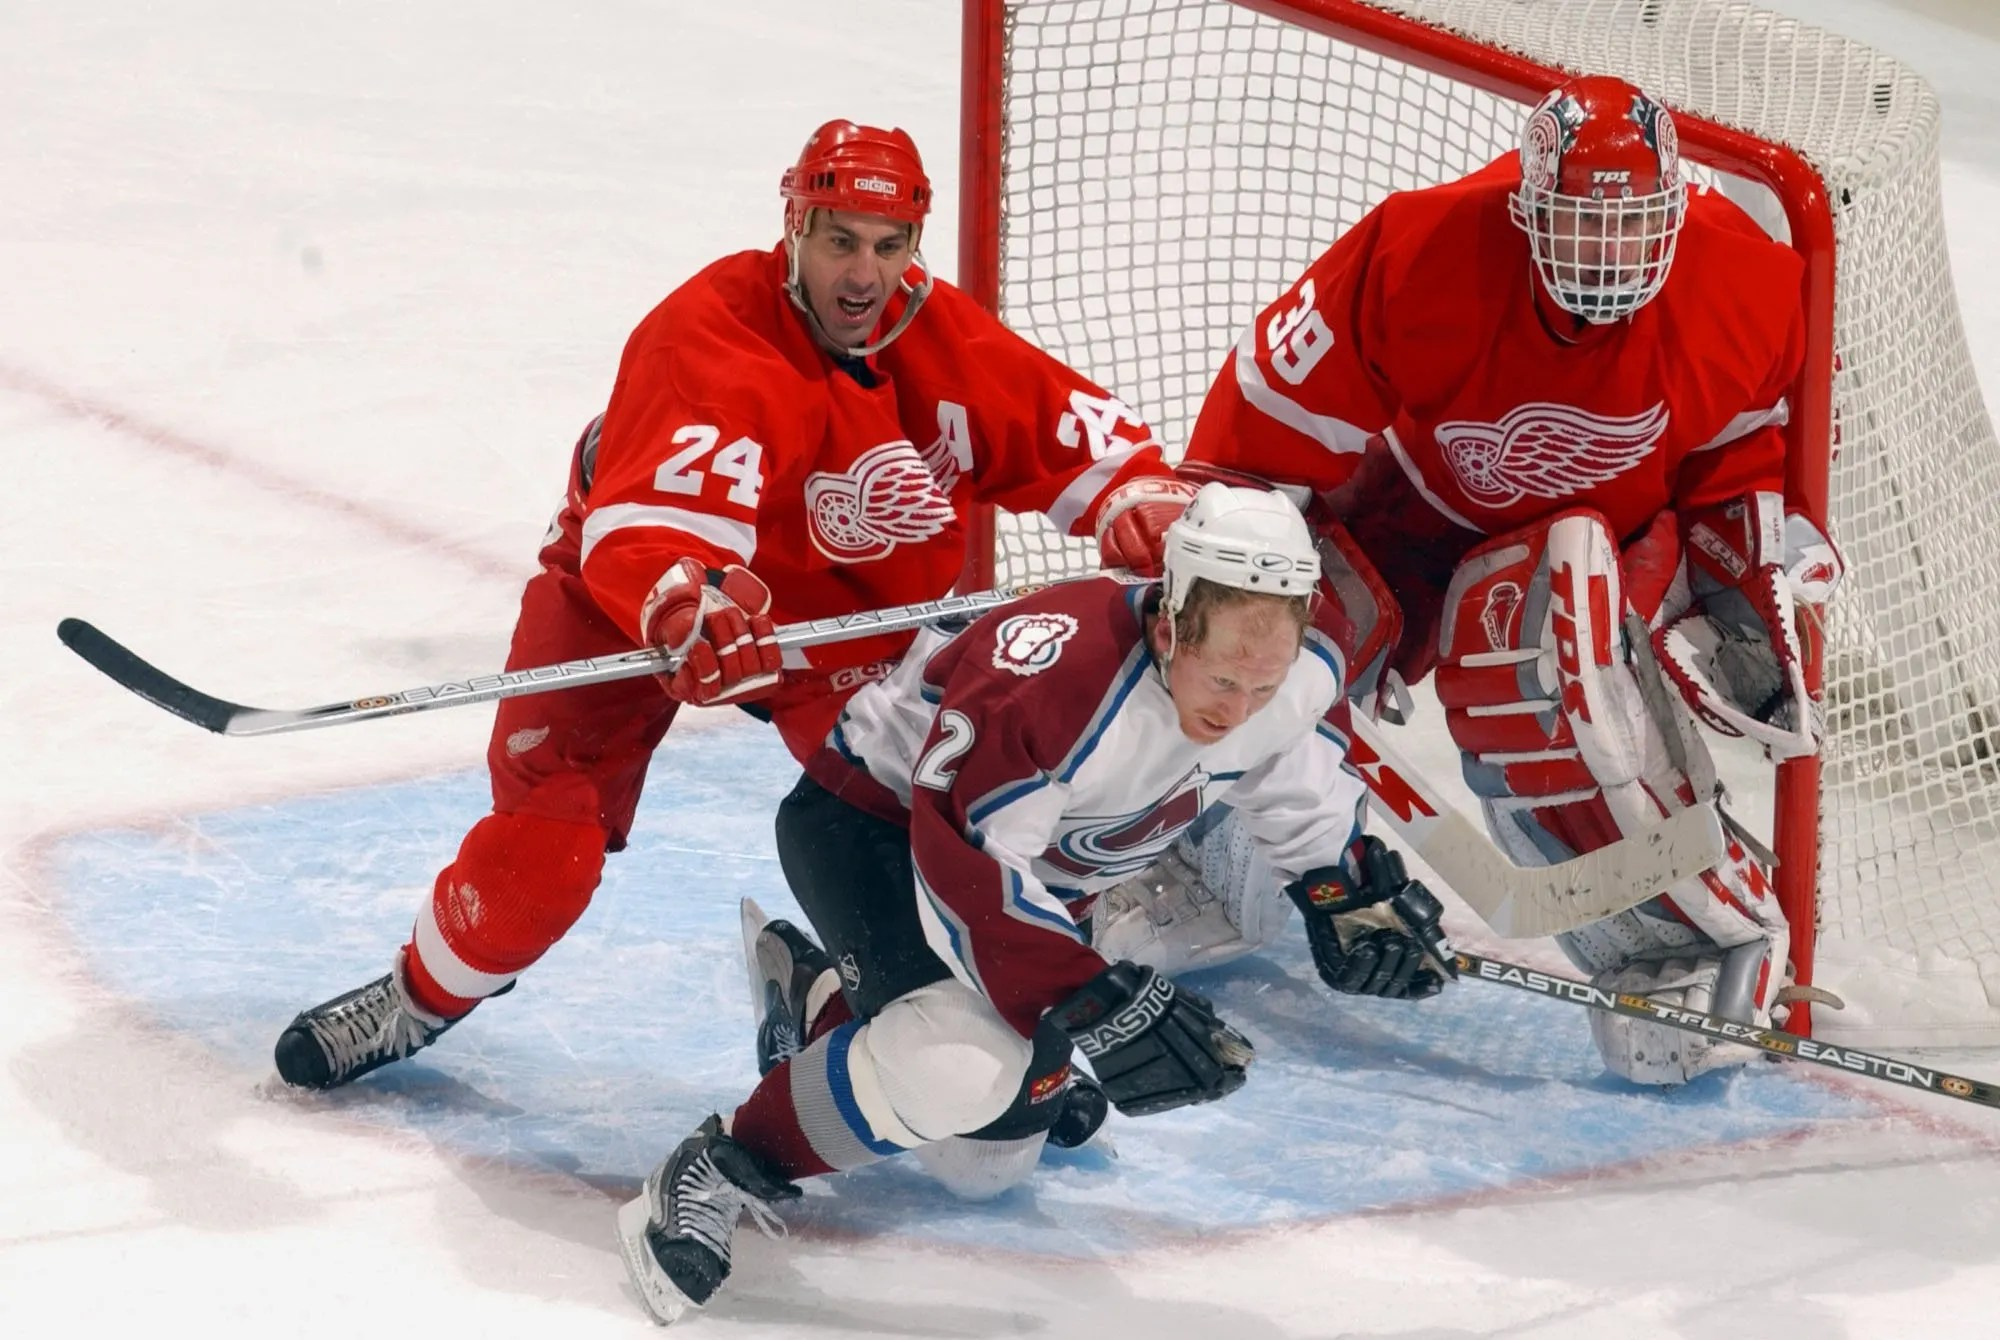 Chris Chelios Leaves Red Wings For Blackhawks Just Too Soon